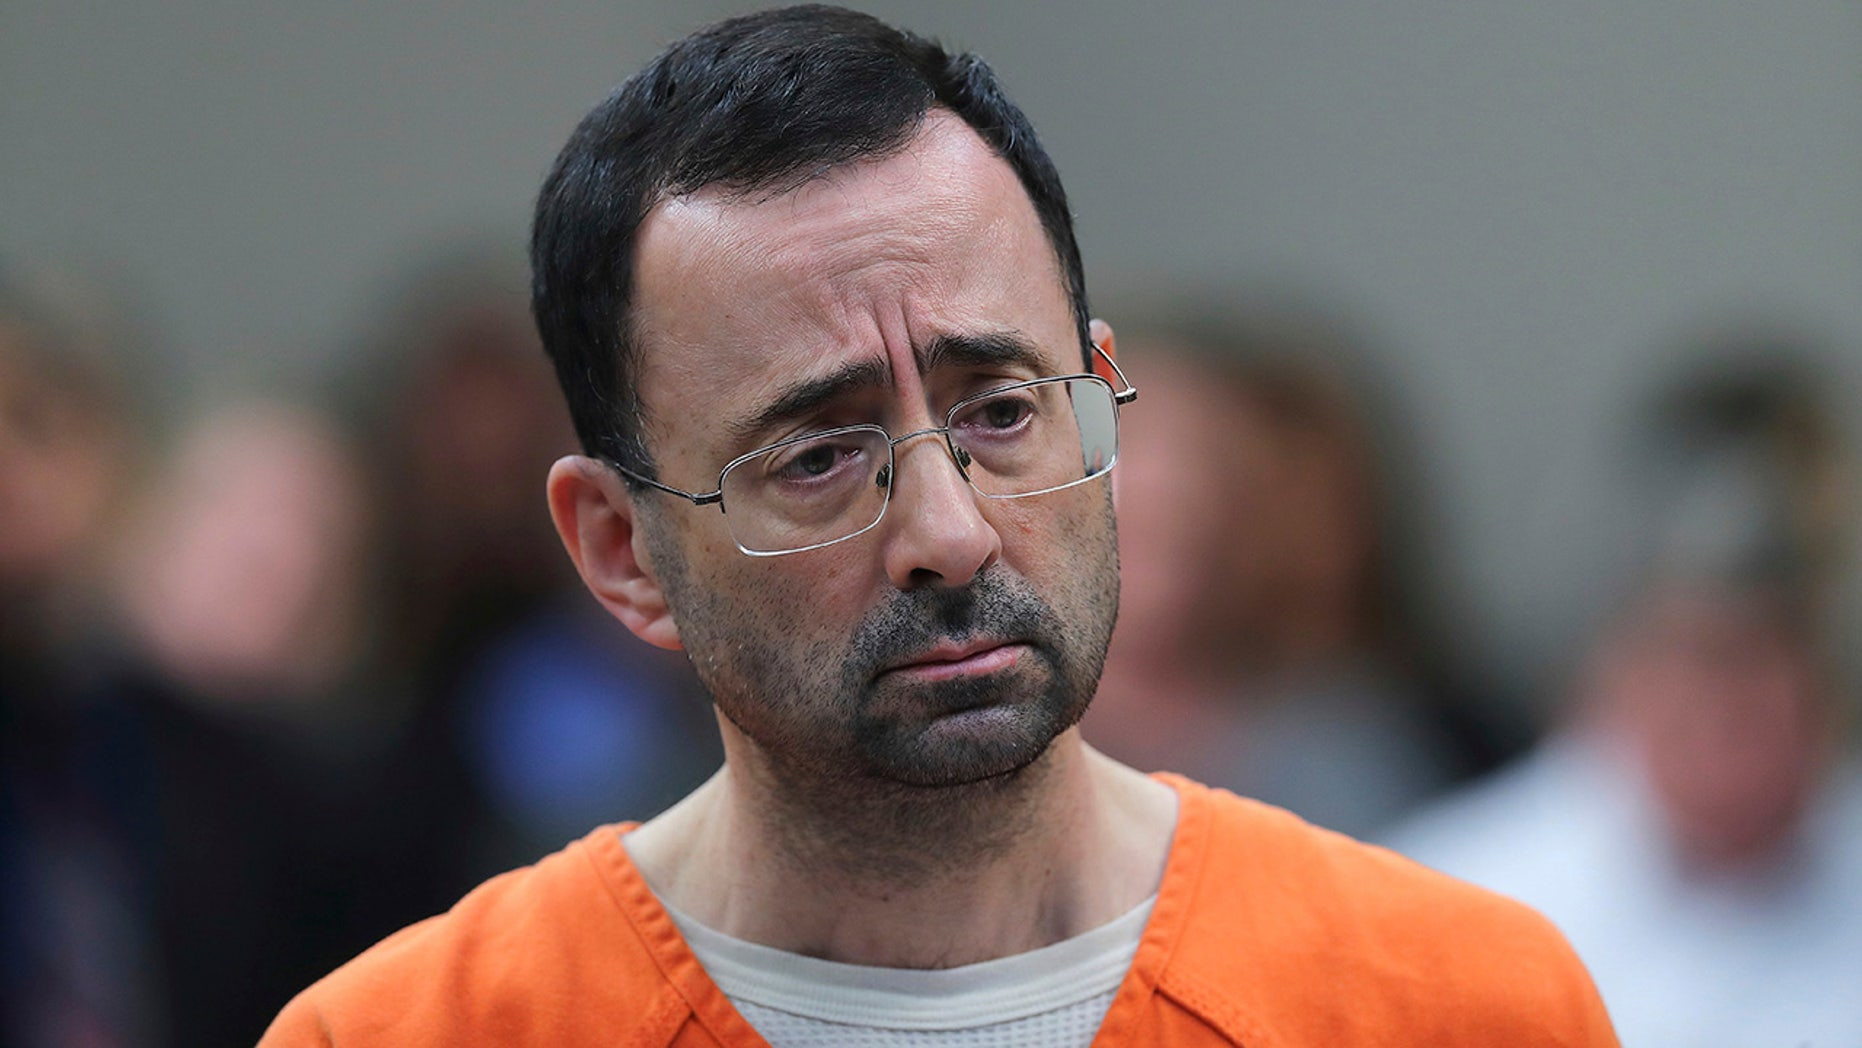 Michigan prosecutors have asked a judge to sentence Larry Nasser to between 40 and 125 years in prison this week.